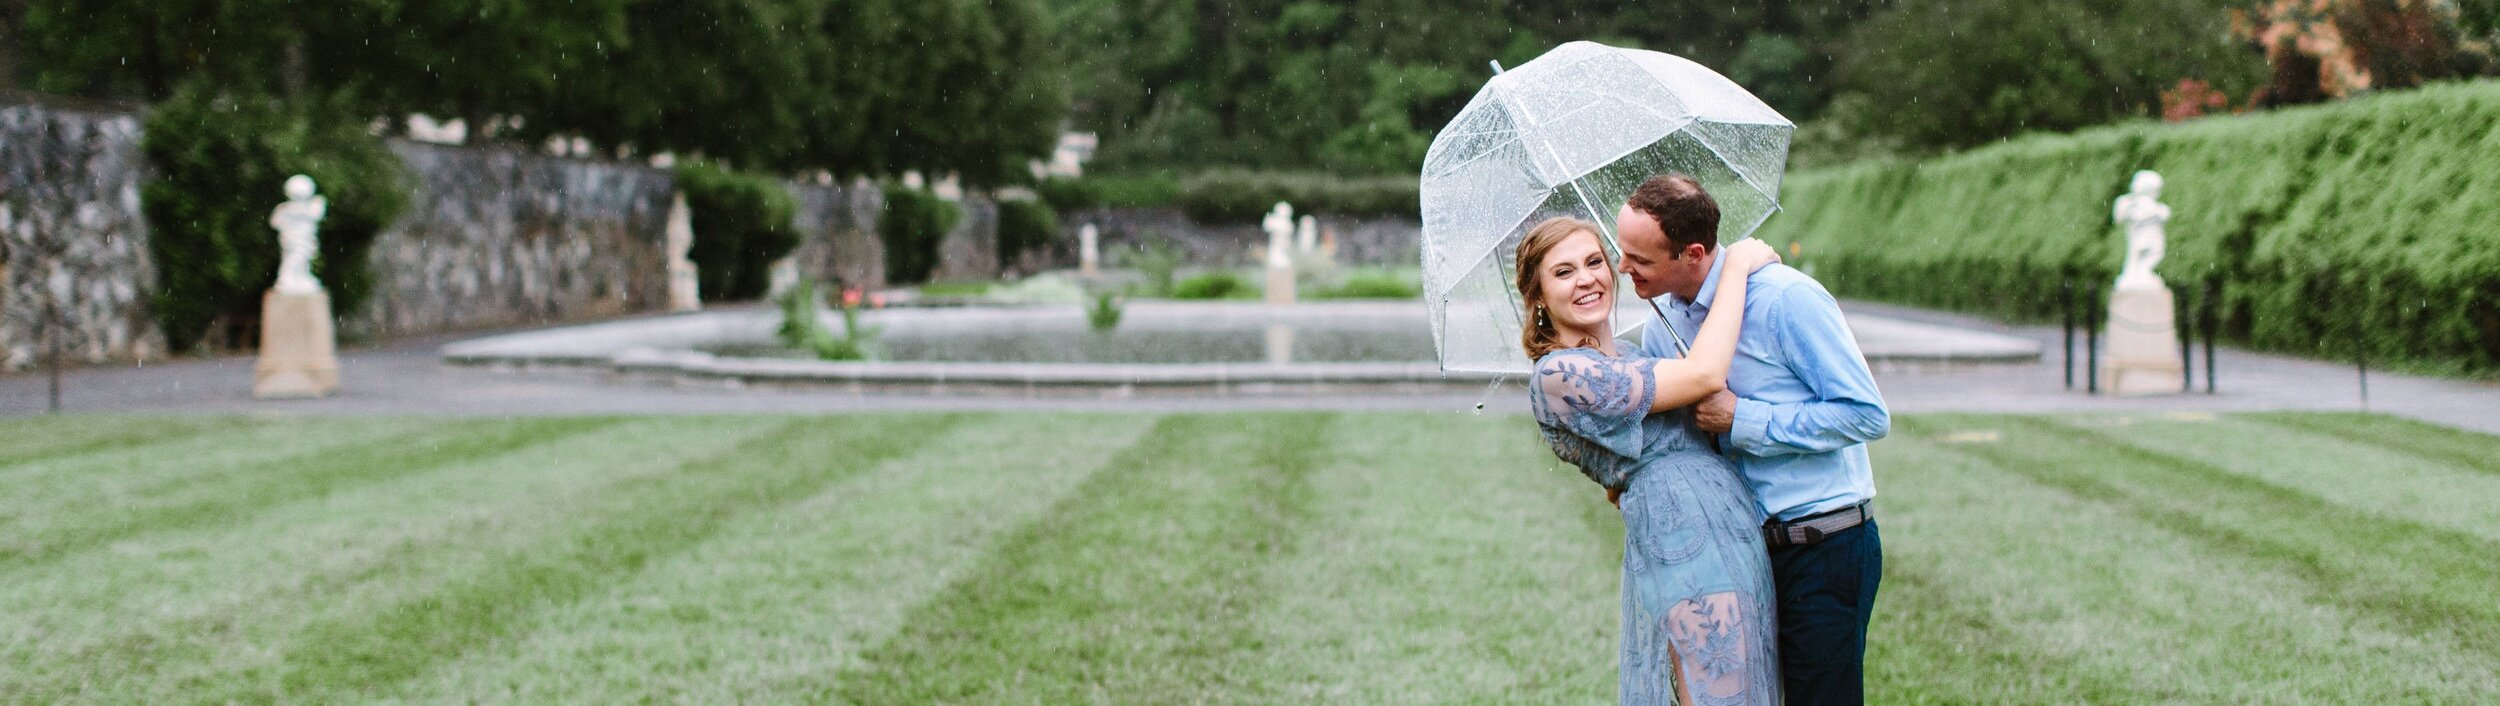 Rainy+day+engagement+session+at+the+Biltmore+estates+by+Suzy+Collins+Photography